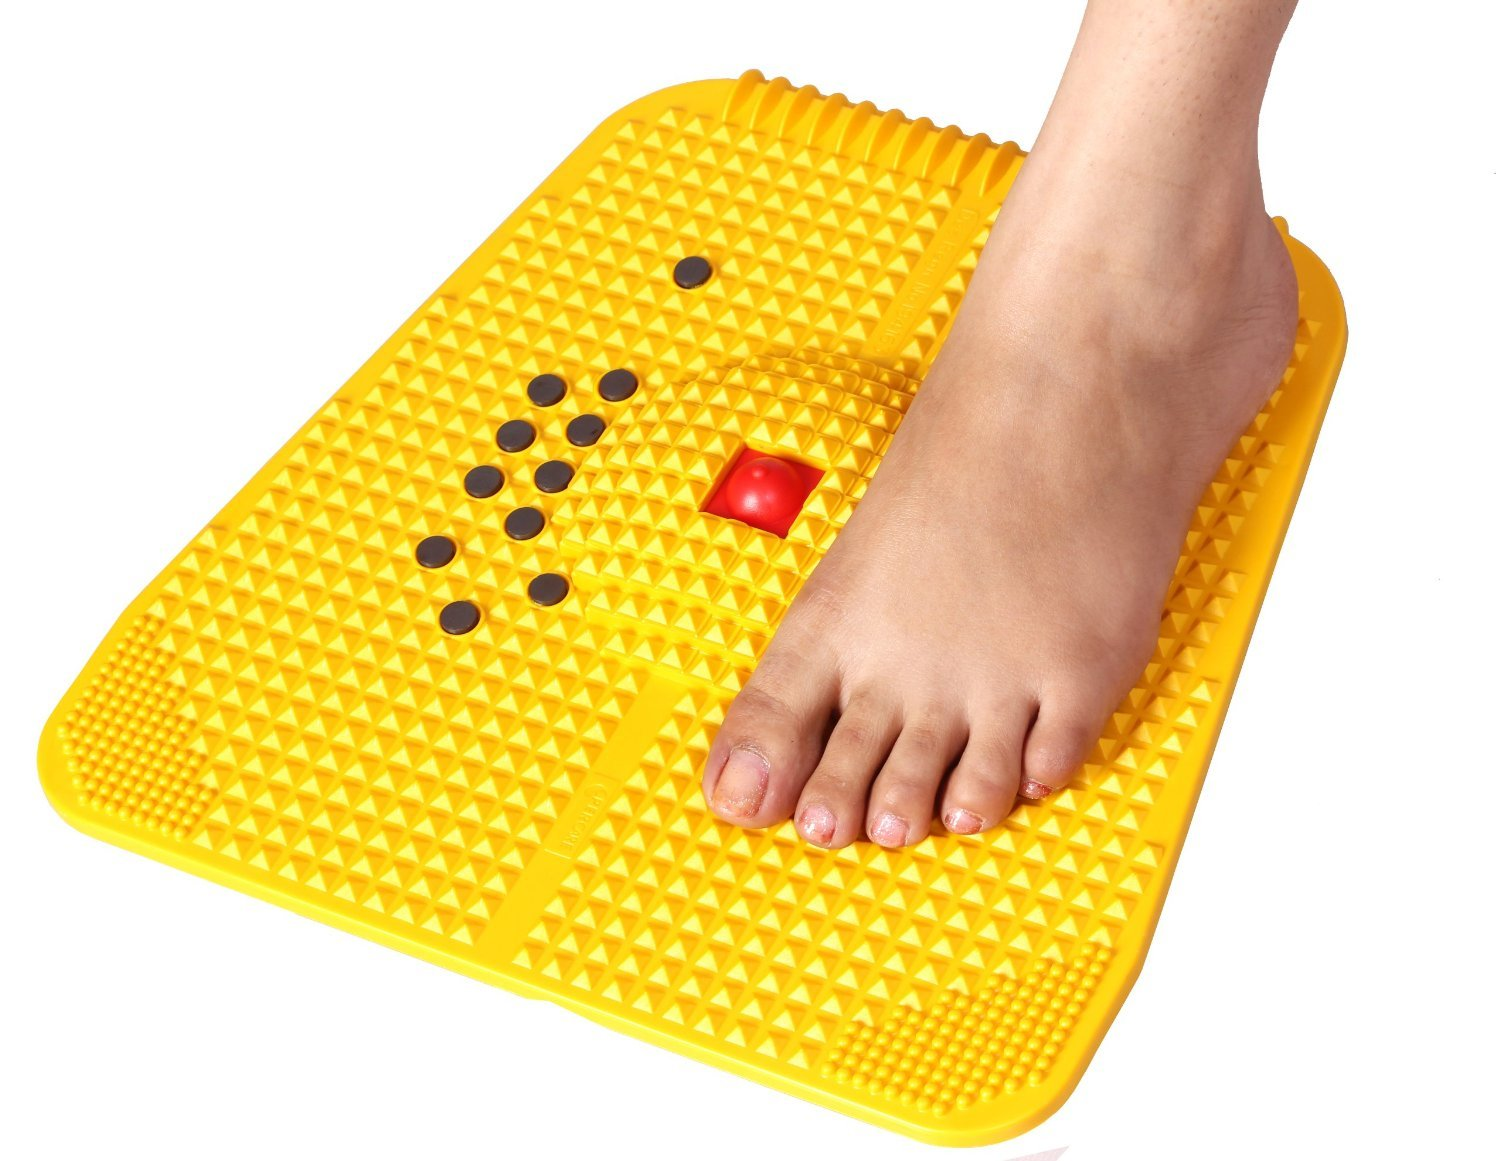 Image result for acupressure mat